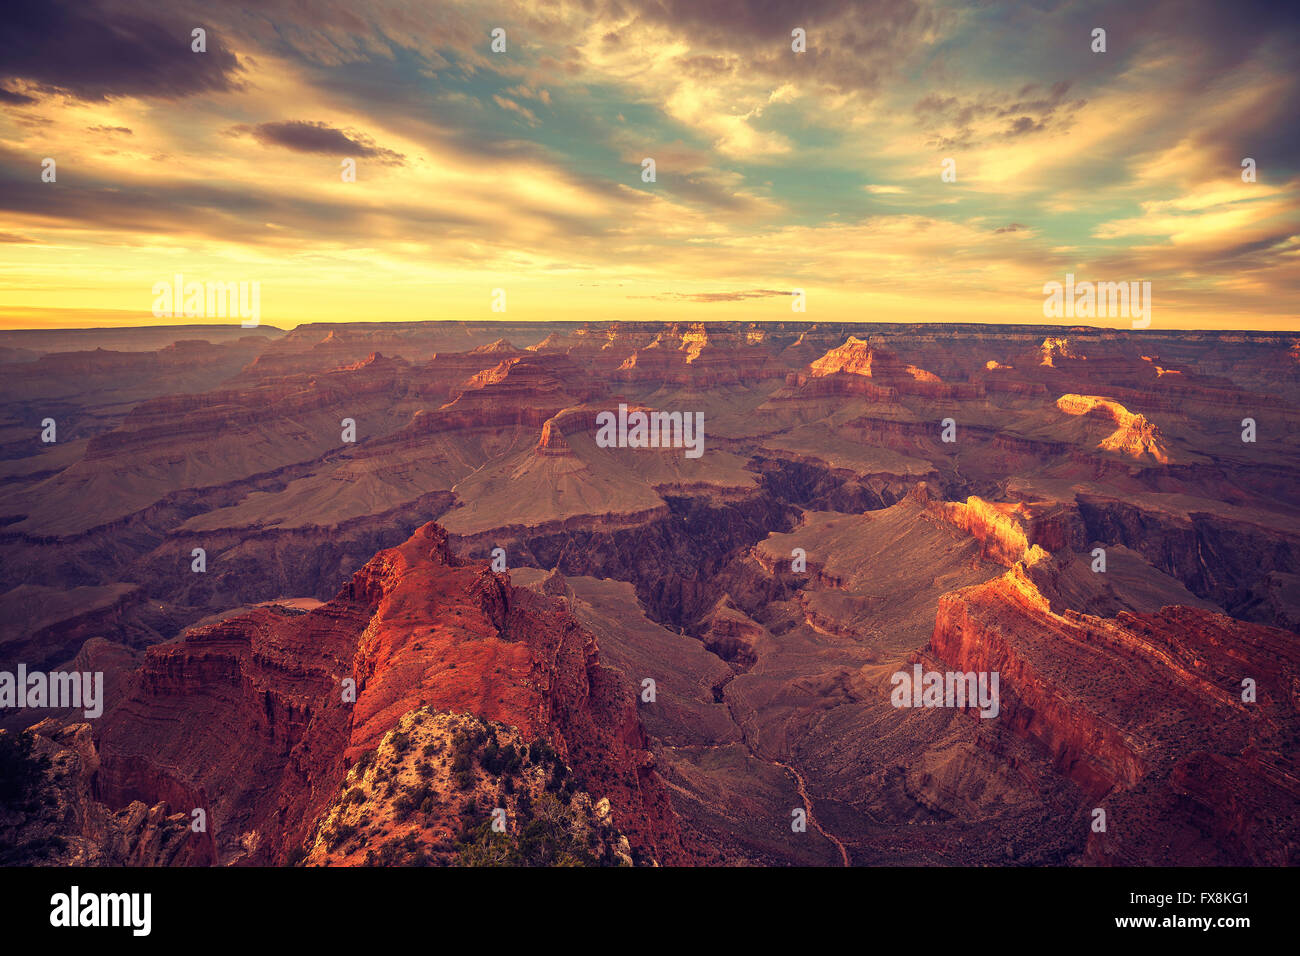 Vintage toned sunset over Grand Canyon, one of the top tourist destinations in the United States. - Stock Image